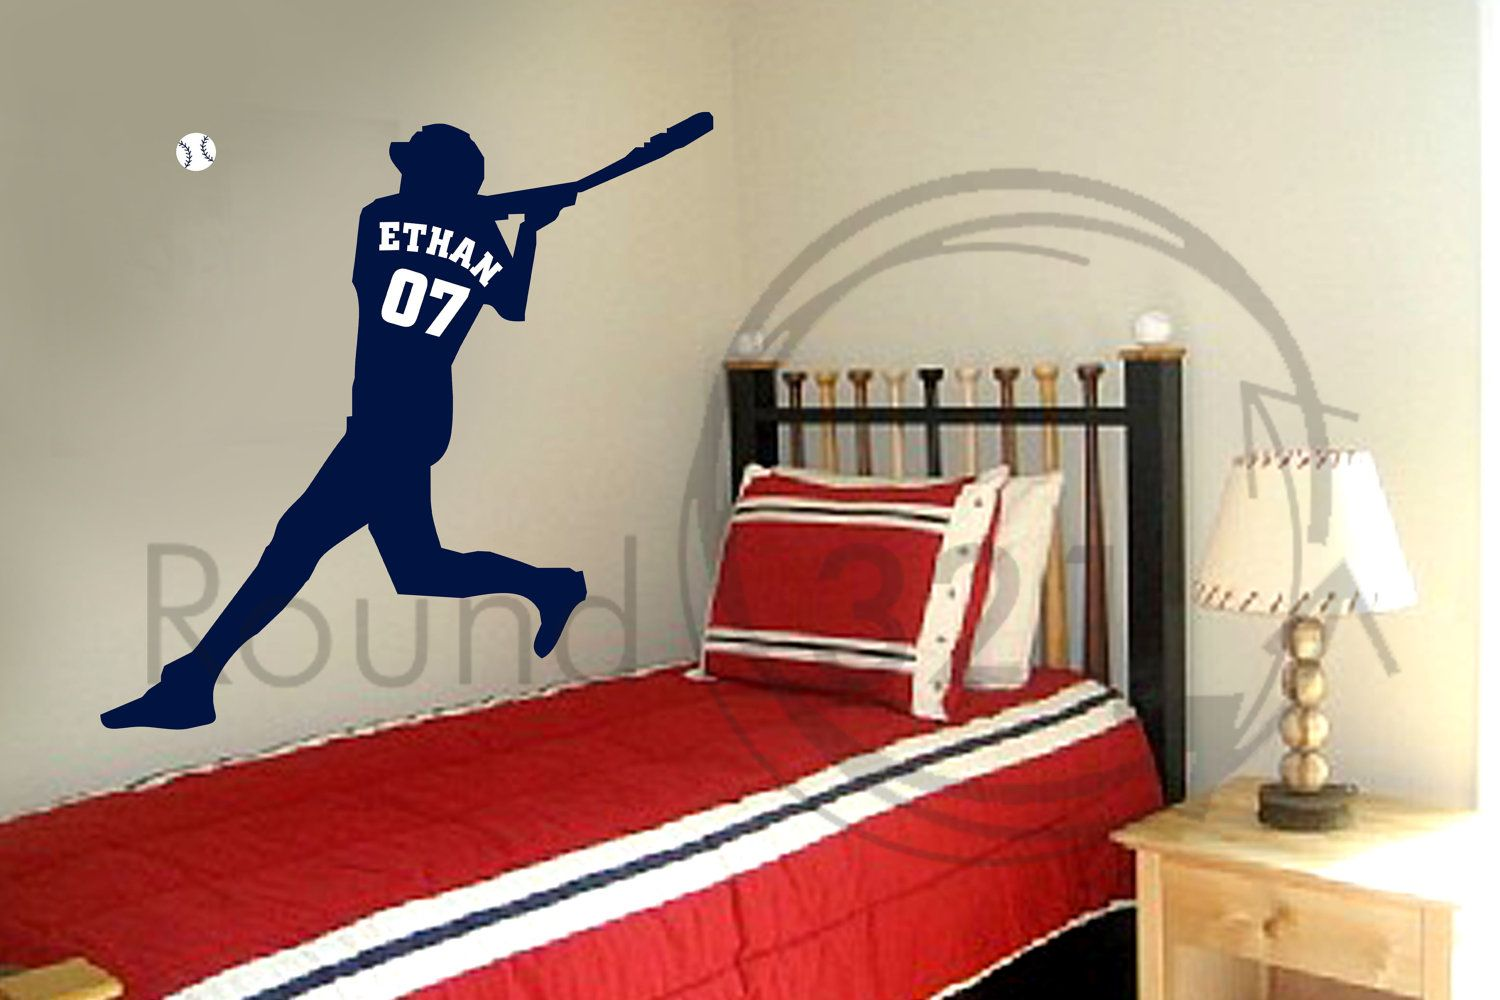 Great Baseball Wall Decal With Personalized Name U0026 Number   Childrenu0027s Room    Infant Room Decal. $45.00, Via Etsy.